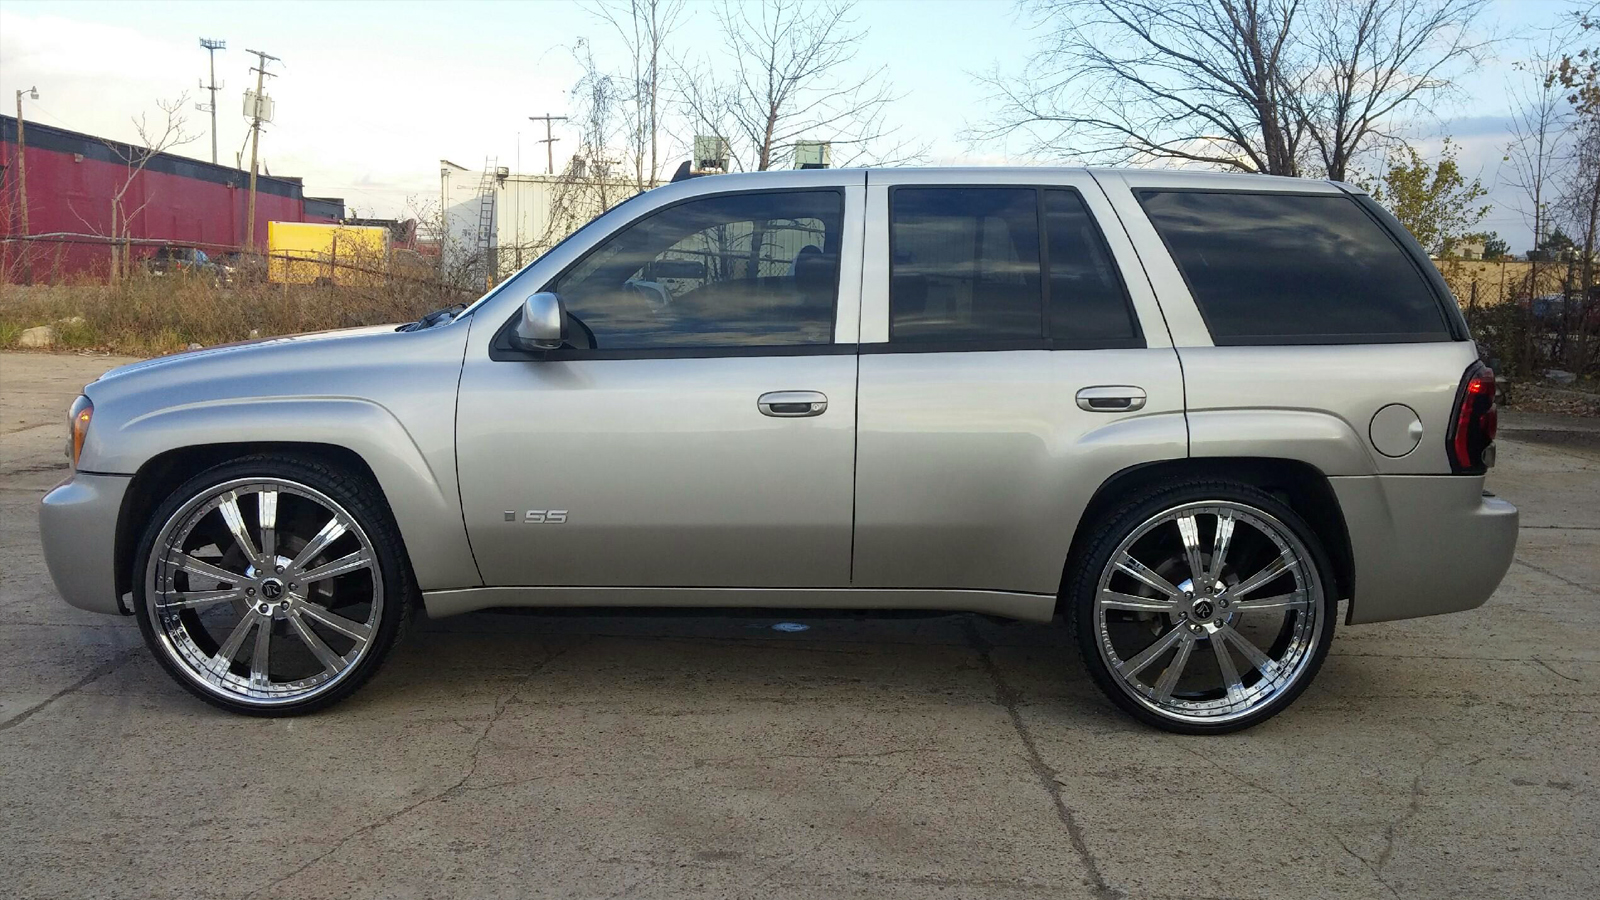 Chevy Trailblazer Ss Large on 2007 Gmc Envoy Rims